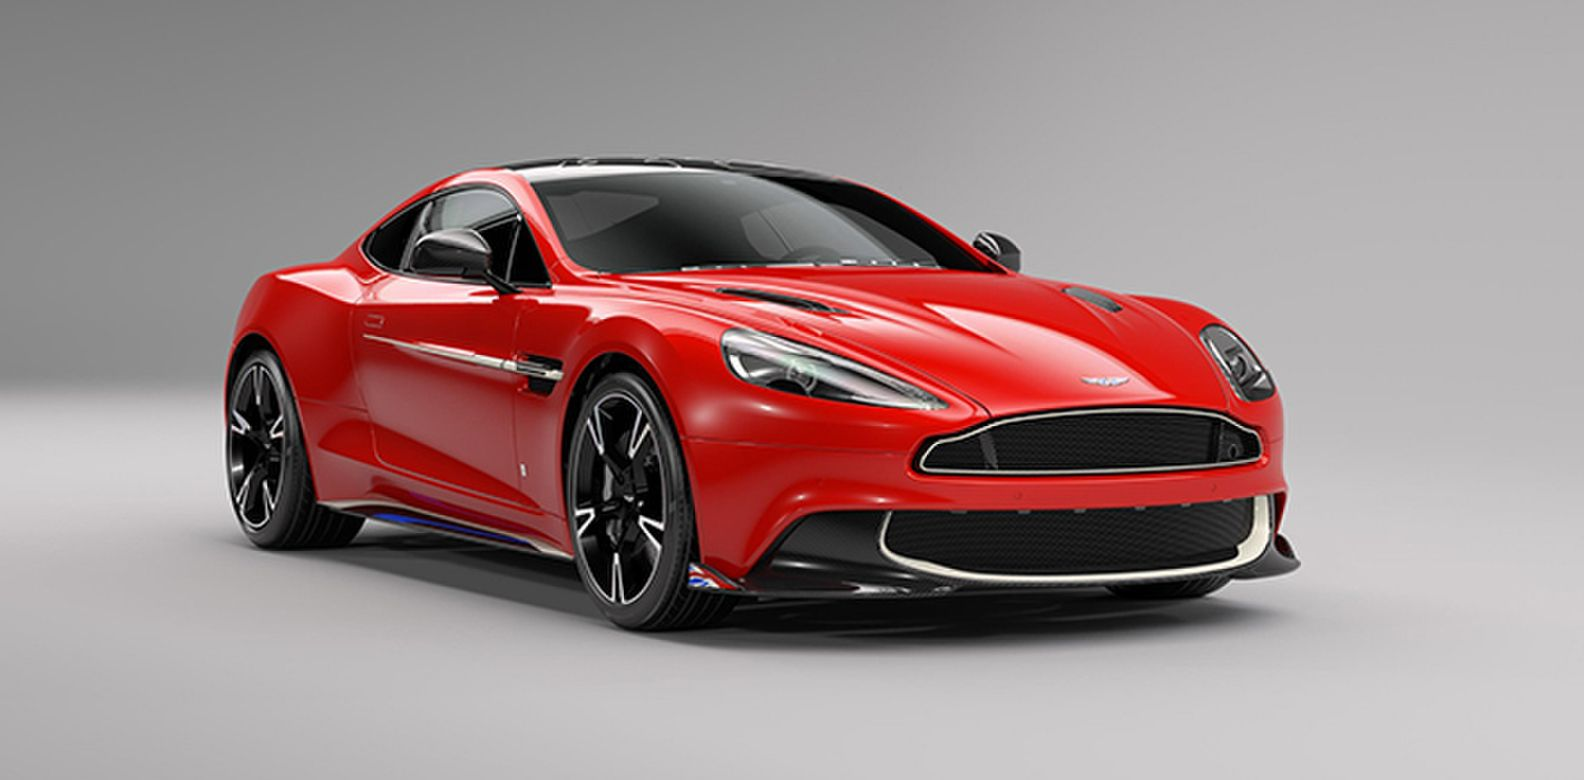 There Are Only Units Of This Aston Martin Car Singapore Tatler - Car aston martin